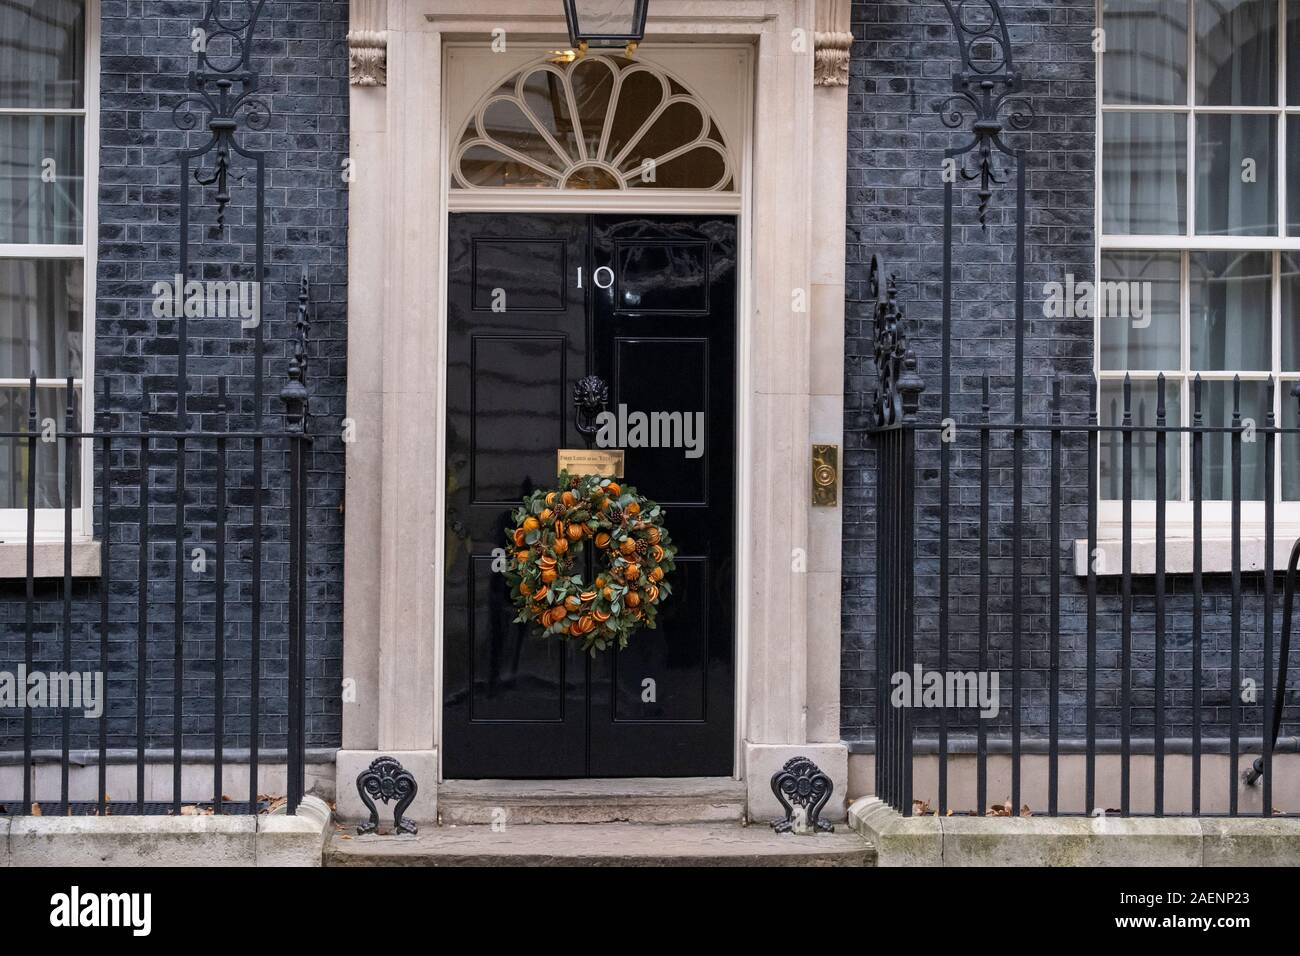 10 Downing Street, London, UK. 10th December 2019. The calm before the storm. A completely quiet Downing Street with festive season decorations, two days before the General Election. Credit: Malcolm Park/Alamy Live News. Stock Photo